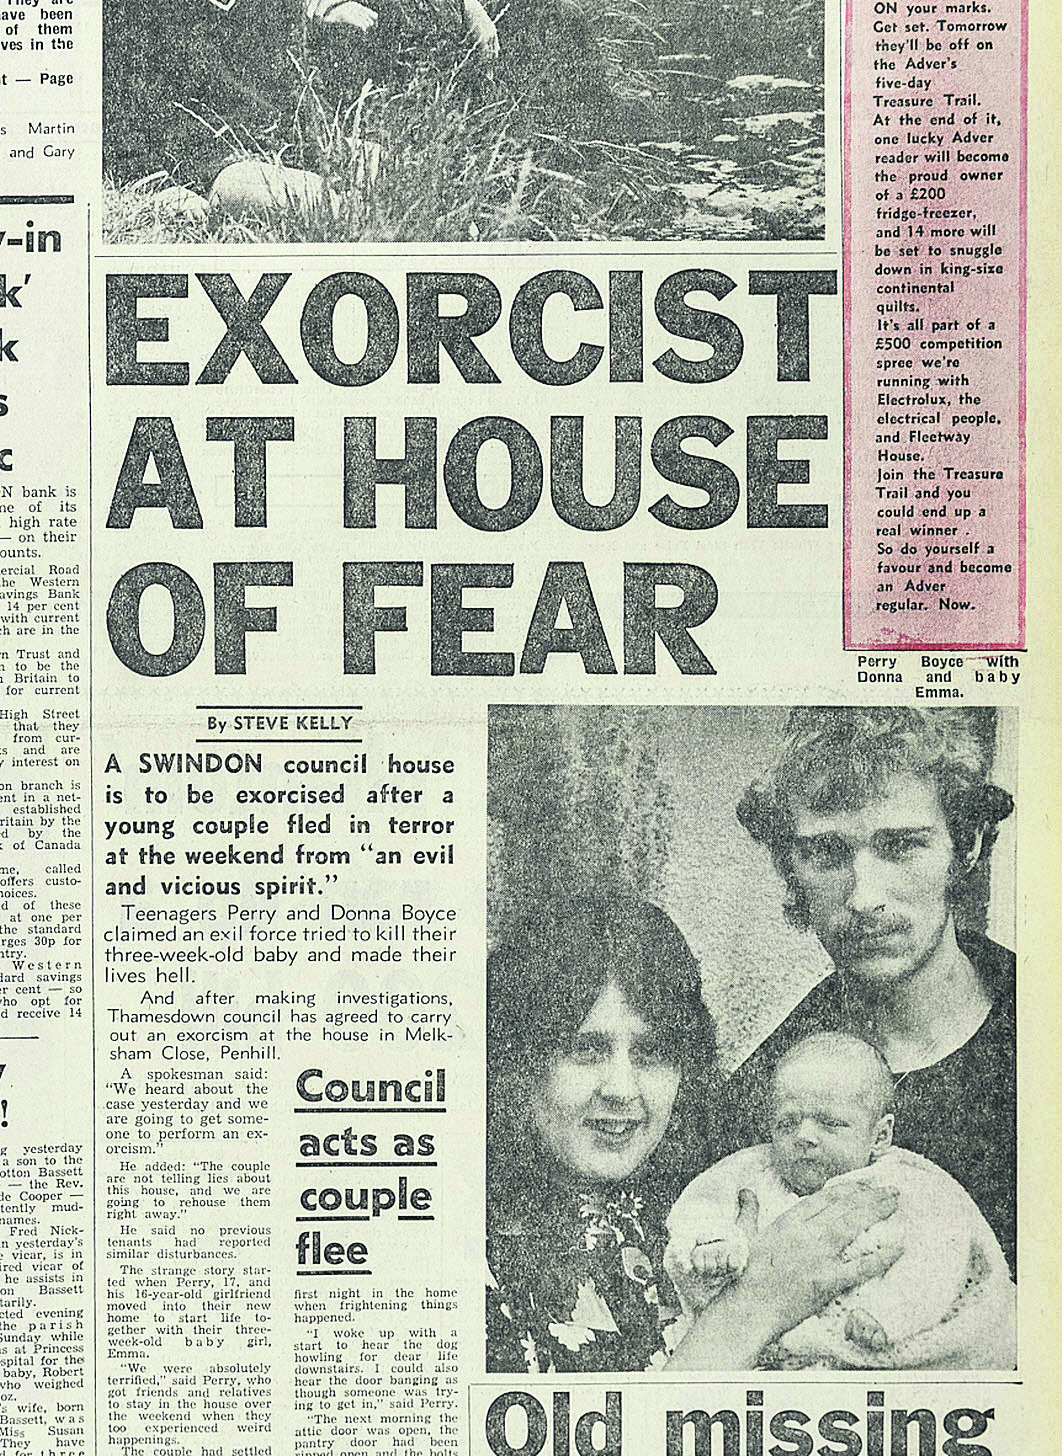 Perry Boyce, girlfriend Donna and baby Emma say they were plagued by an evil spirit at their Penhill home. The council took their complaint seriously enough to call in an exorcist